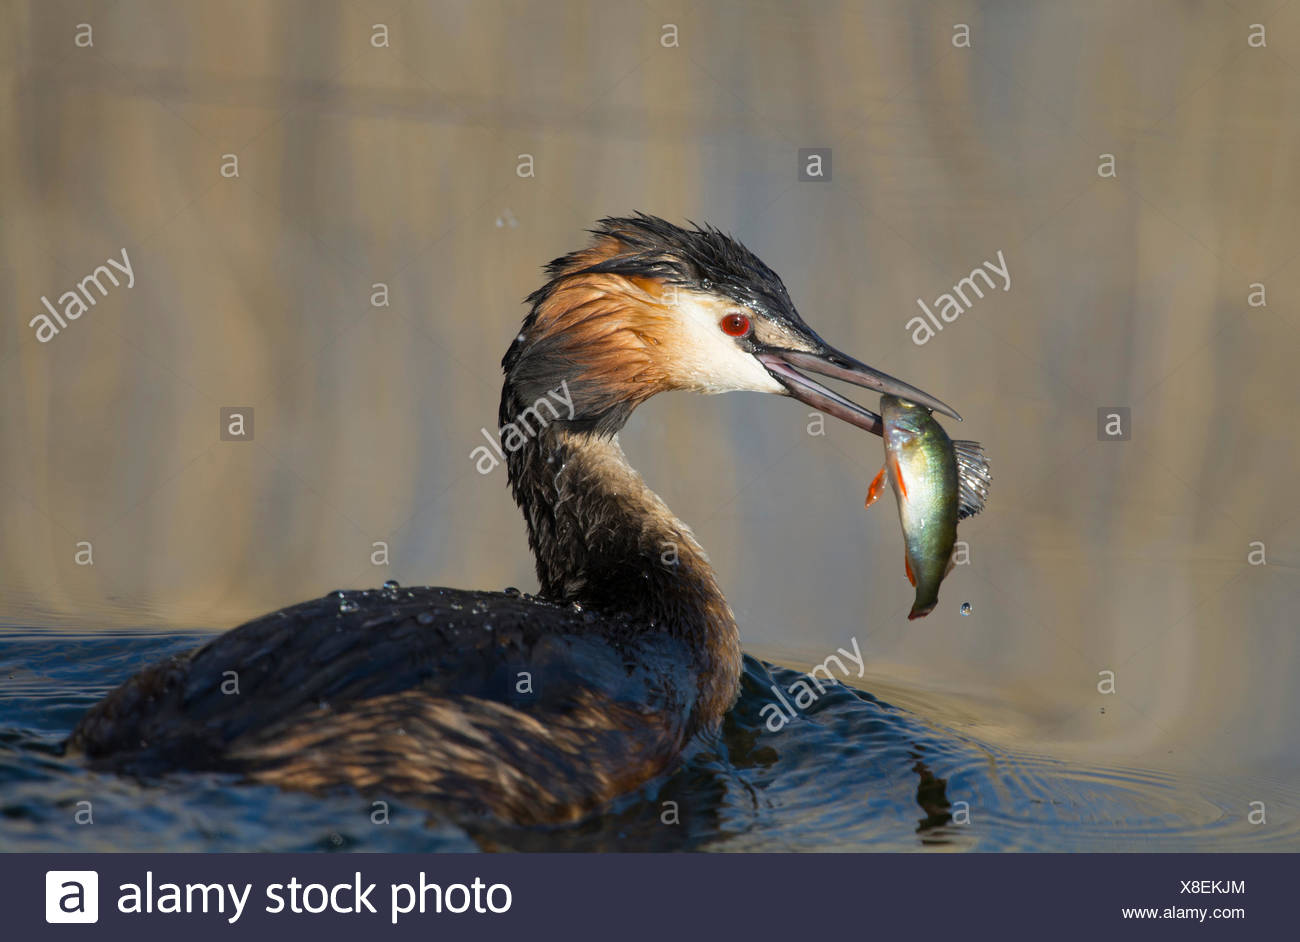 Great Crested Grebe with seized fish (Podiceps cristatus) - Stock Image